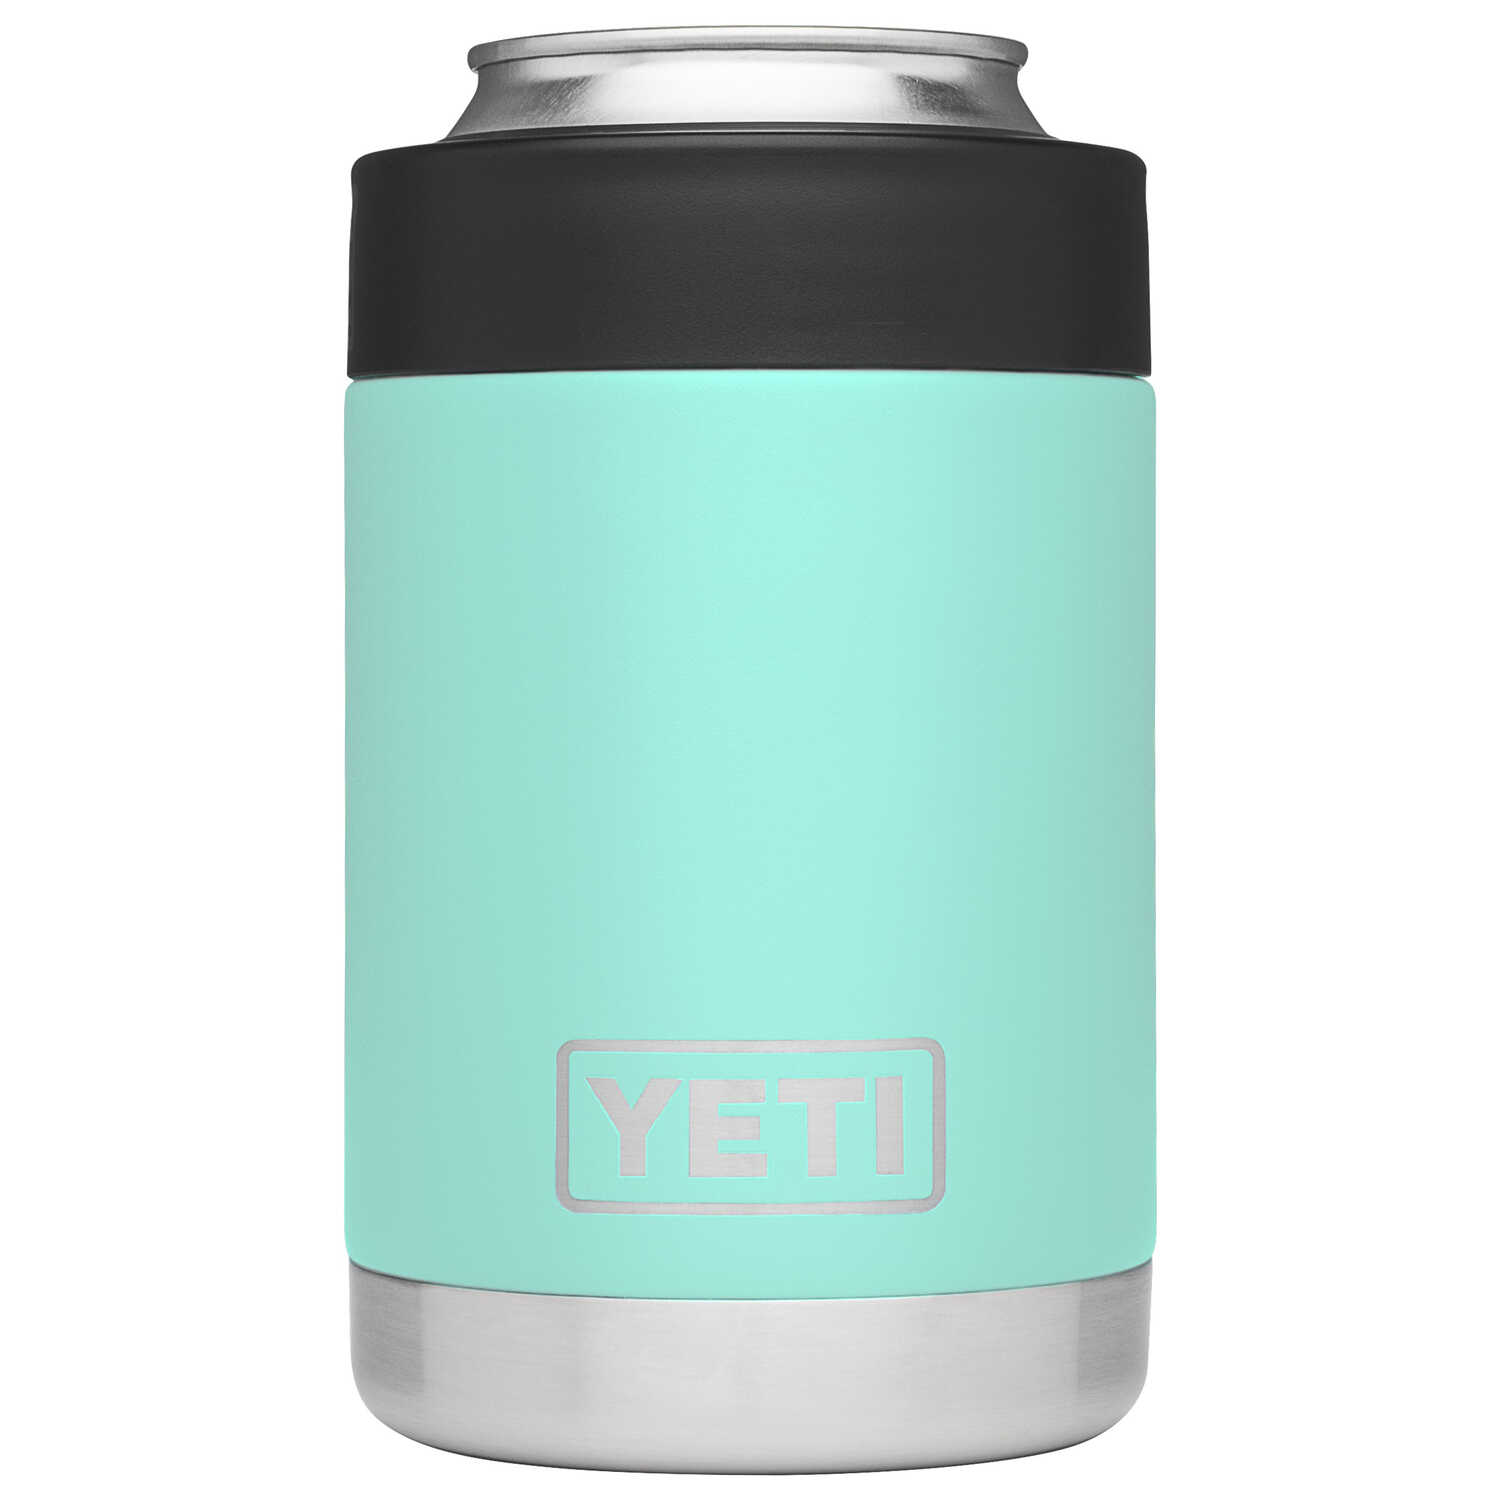 YETI  Rambler Colster  Seafoam Green  Stainless Steel  Beverage Holder  BPA Free 12